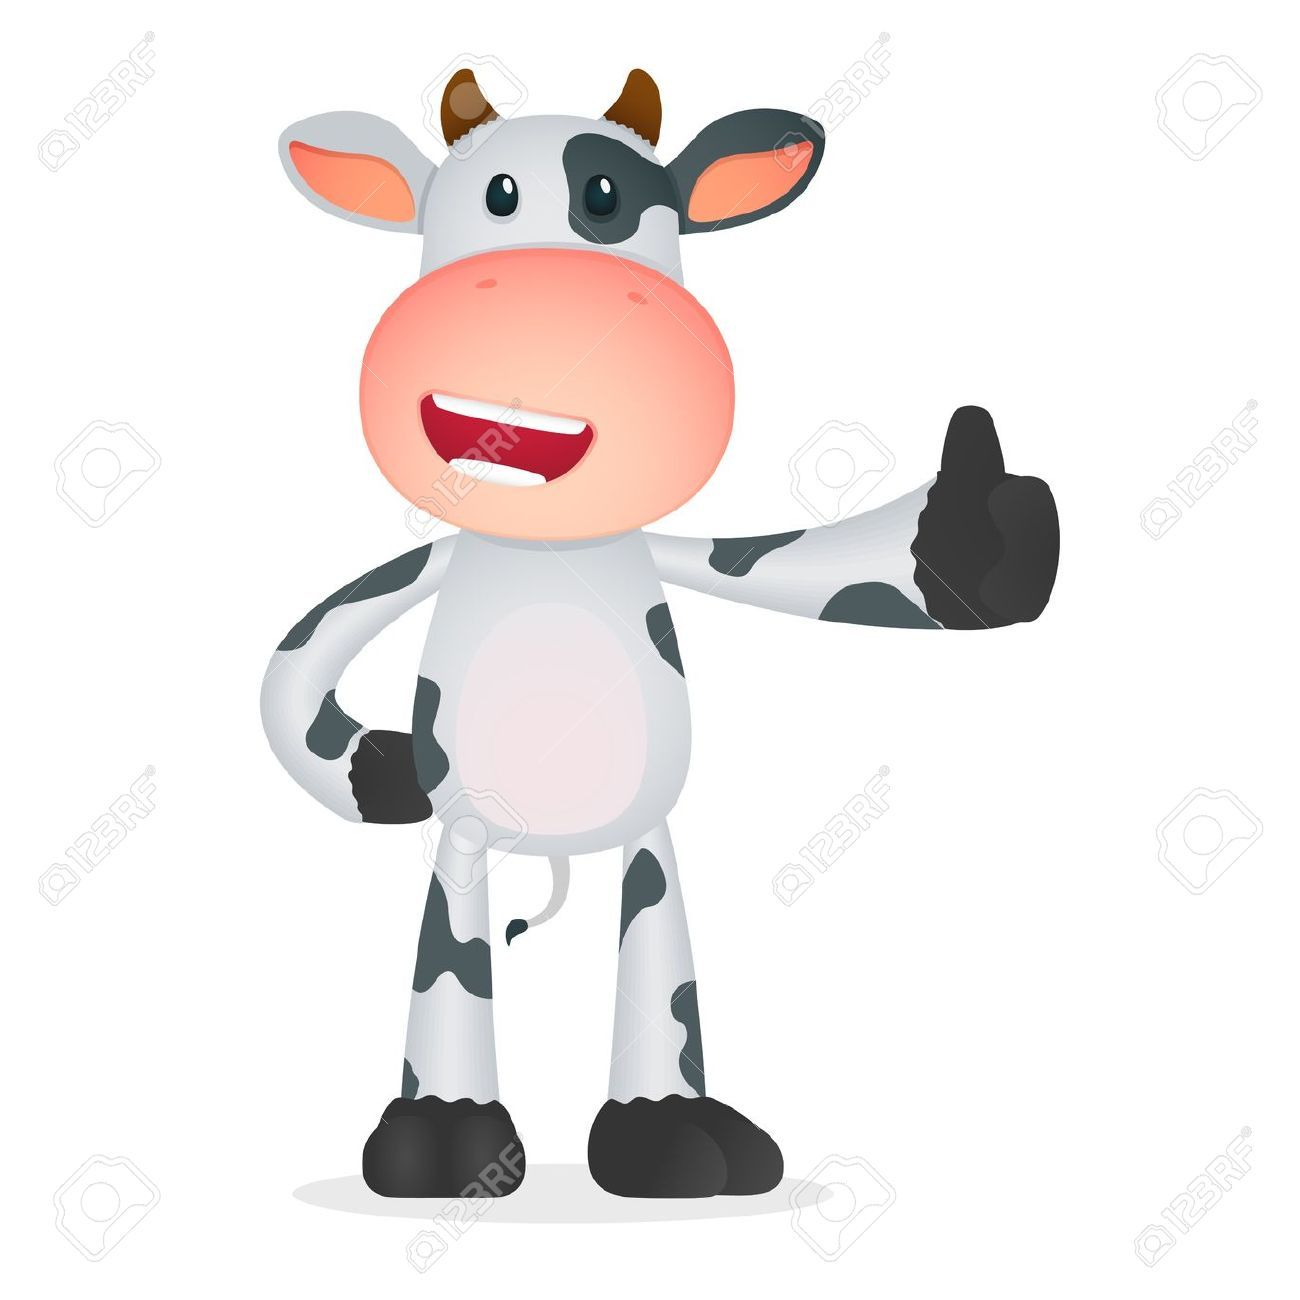 Funny Cartoon Cow Royalty Free Cliparts, Vectors, And Stock ...